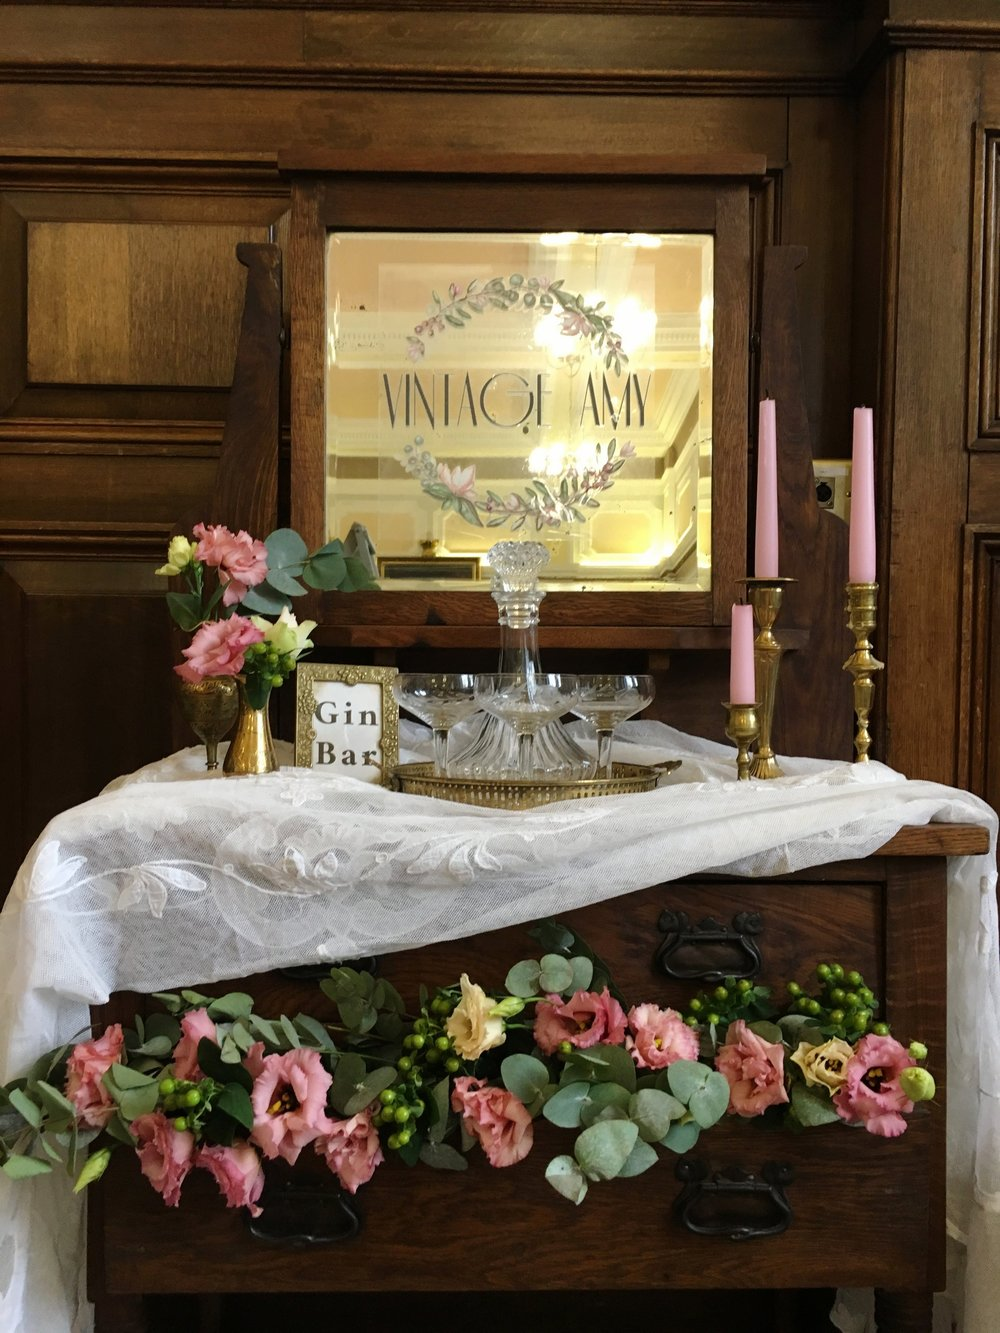 Vintage Amy Wedding Styling-Vintage Gin Bar Dresser-London Wedding